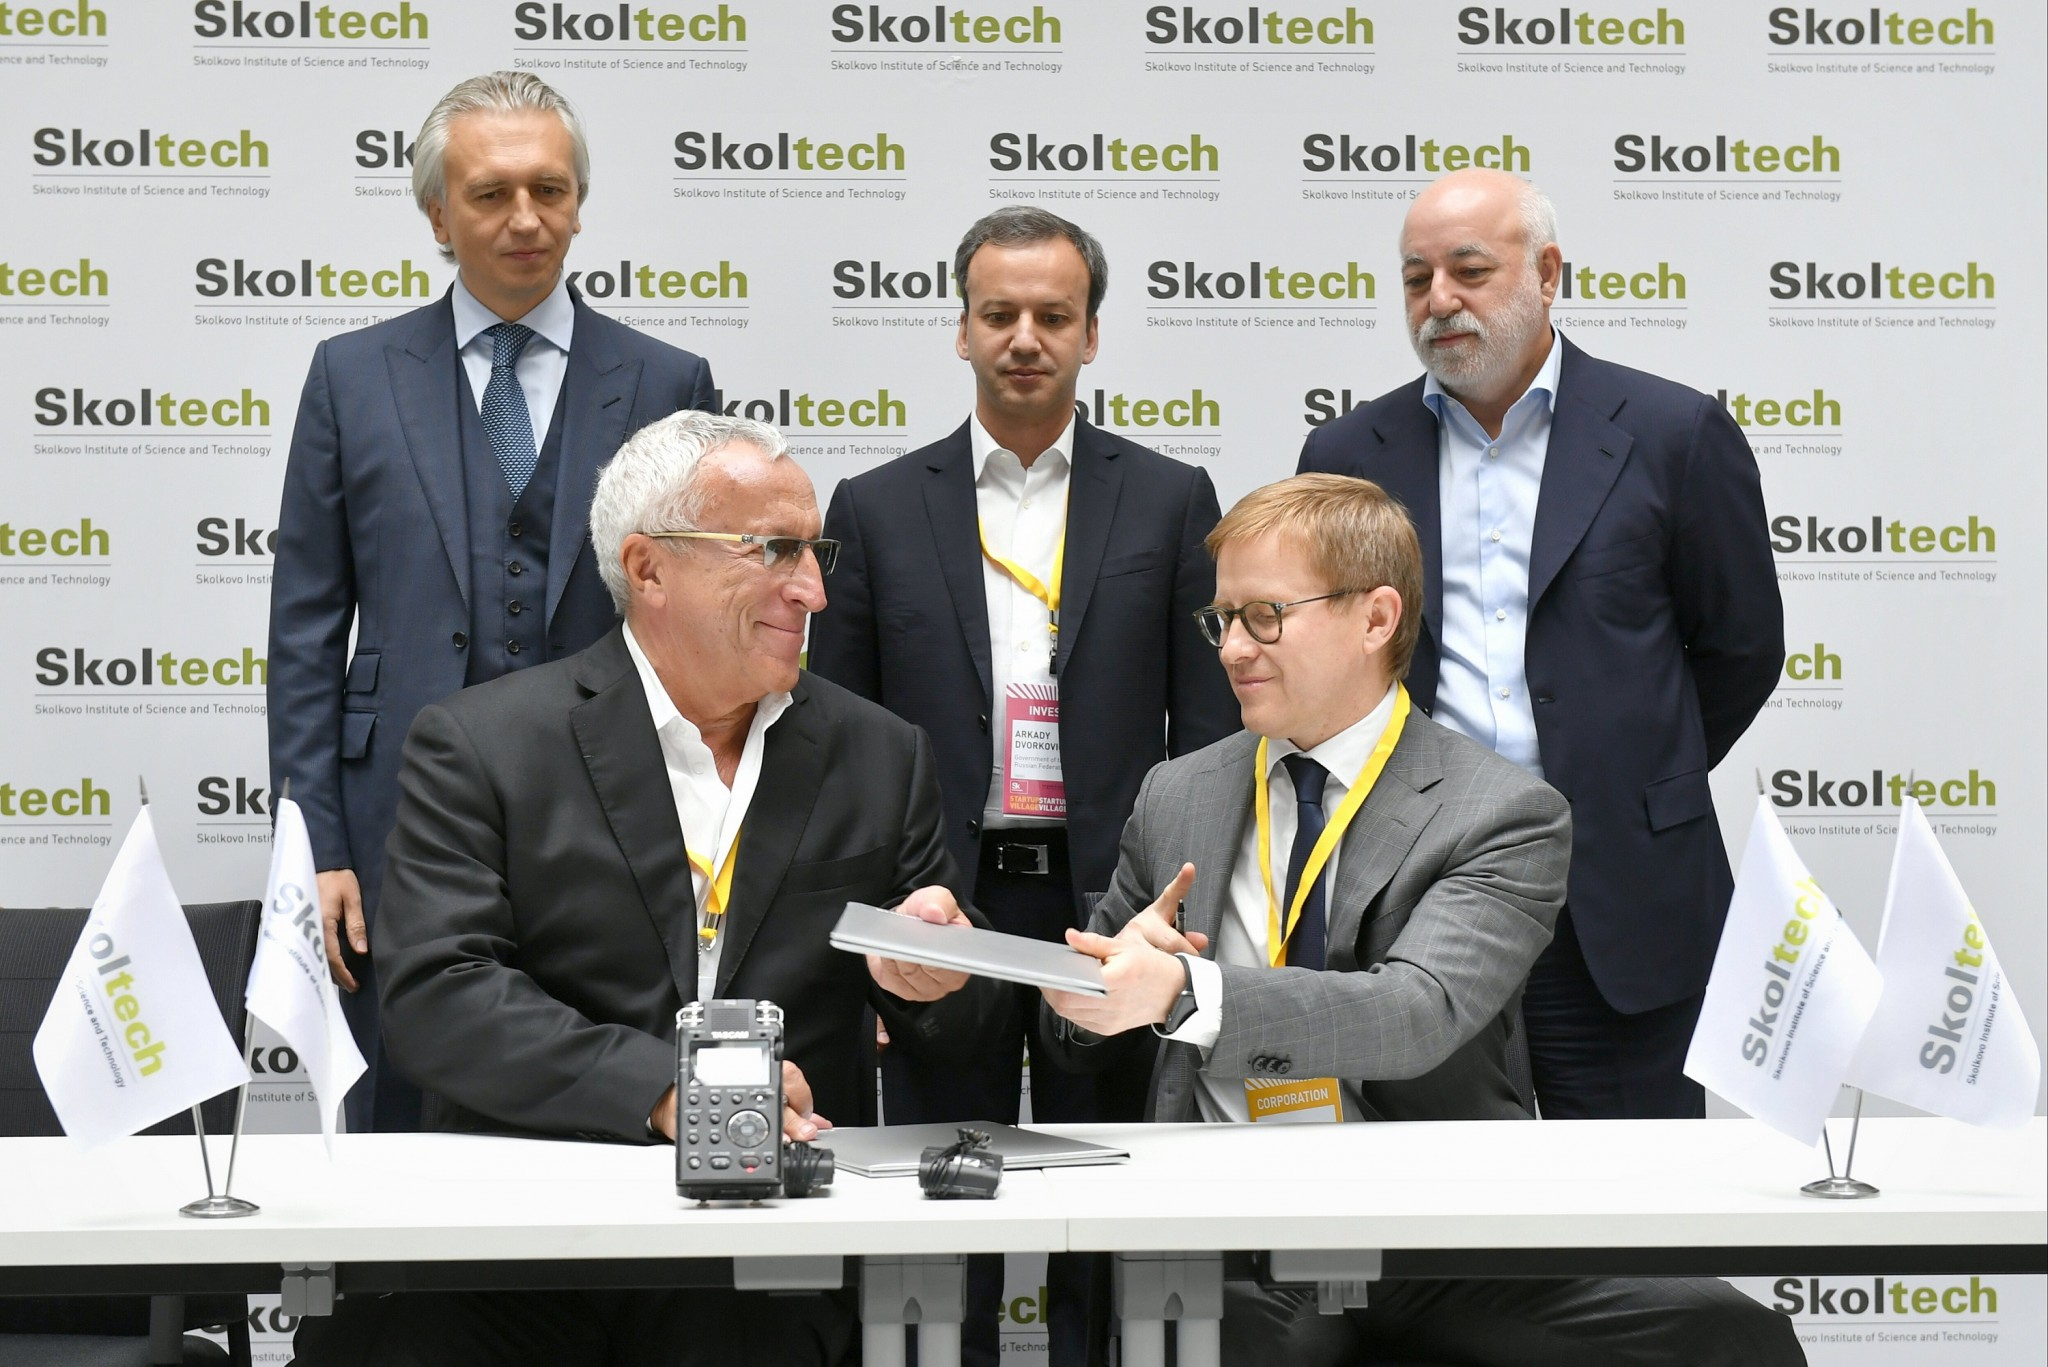 Skoltech President Alexander Kuleshov (bottom left) and Gazprom Neft First Deputy CEO Vadim Yakovlev (bottom right) sign a cooperation agreement as Gazprom Neft CEO Alexander Dyukov, Russian Deputy Prime Minister Arkady Dvorkovich and Skolkovo Foundation President Victor Vekselberg (top left to right) look on.